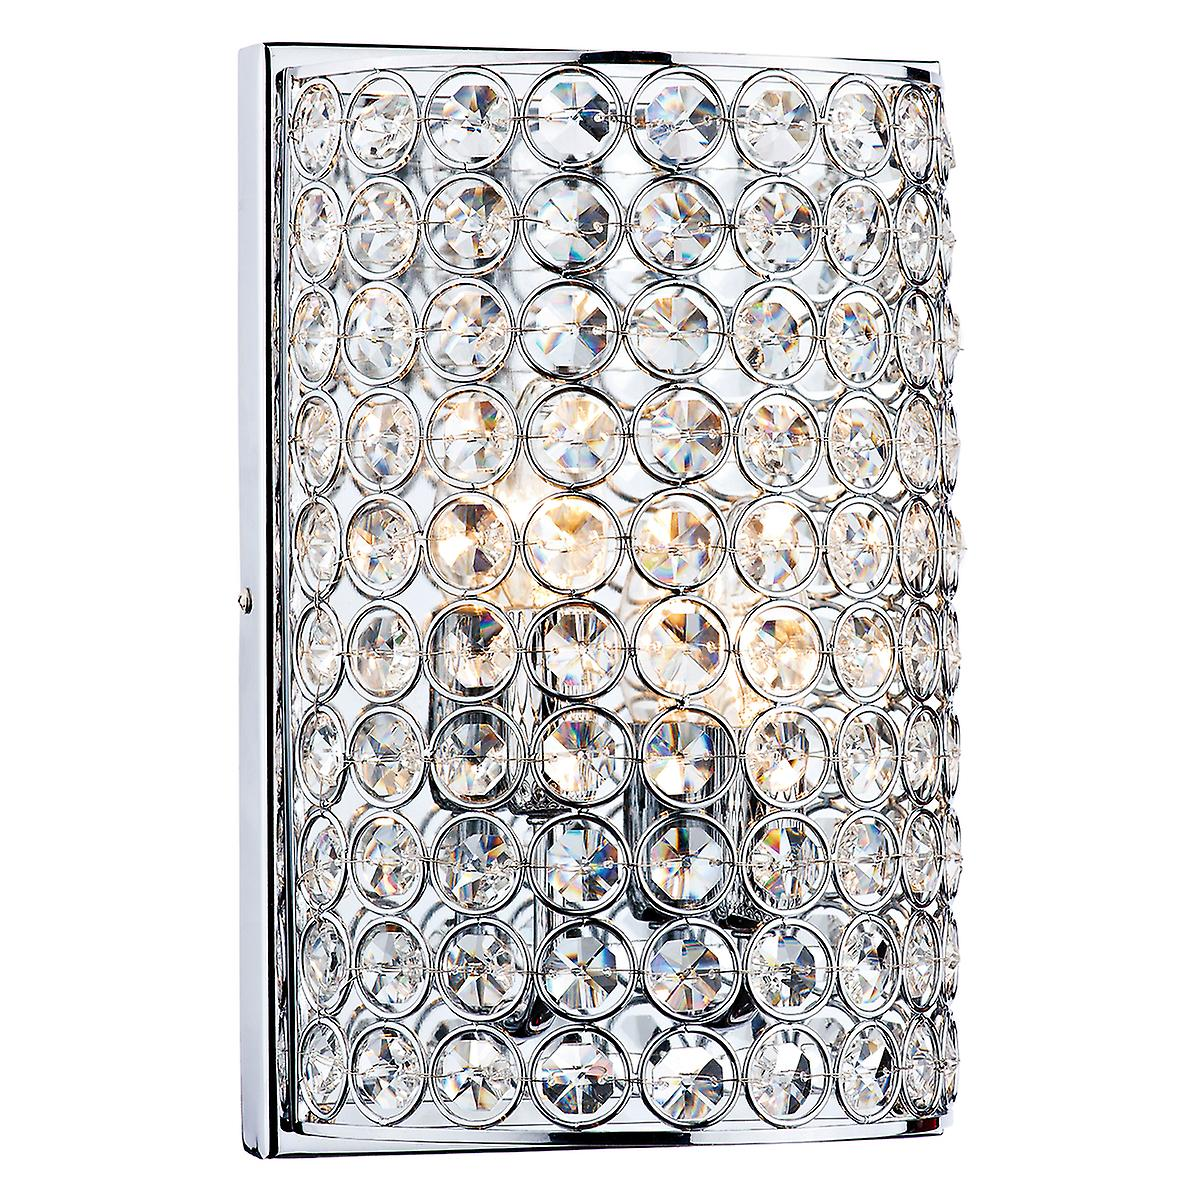 Dar FRO0950 Frost Modern Switched And Double Insulated Crystal Wall Light